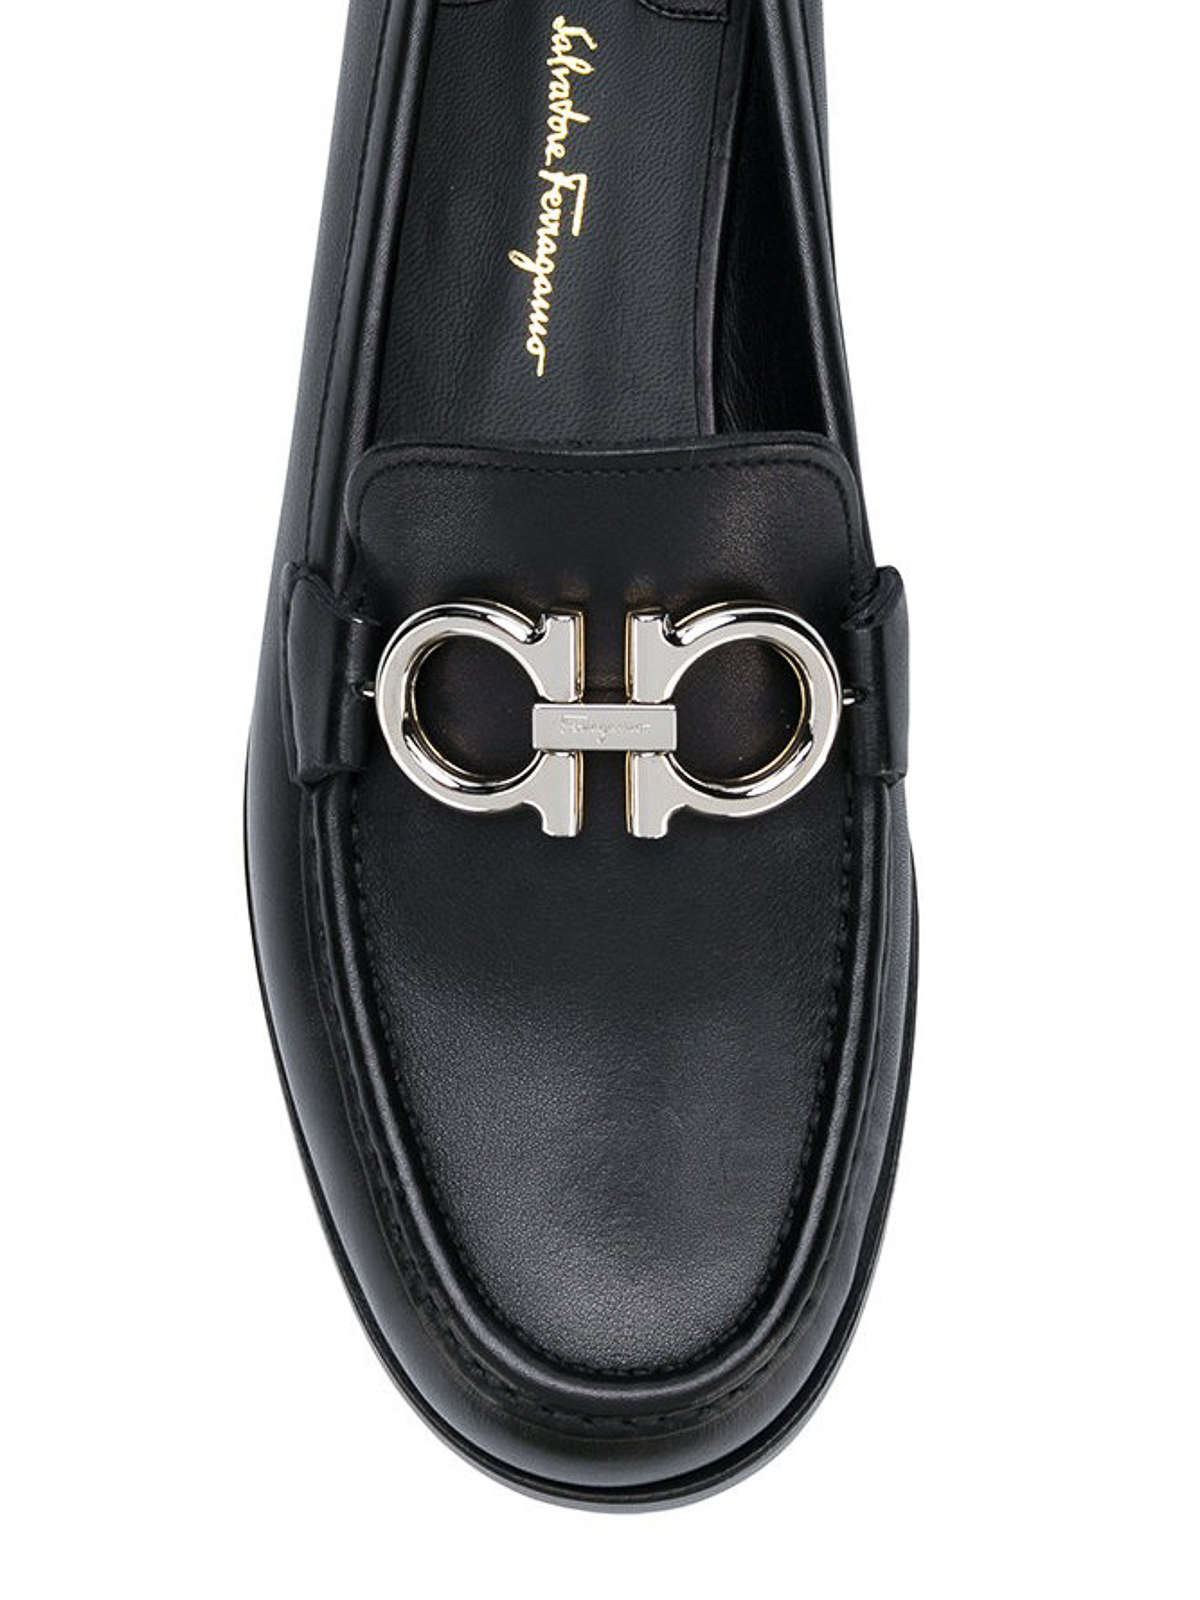 ab2876858e3 iKRIX SALVATORE FERRAGAMO  Loafers   Slippers - Rolo black leather loafers  with Gancini